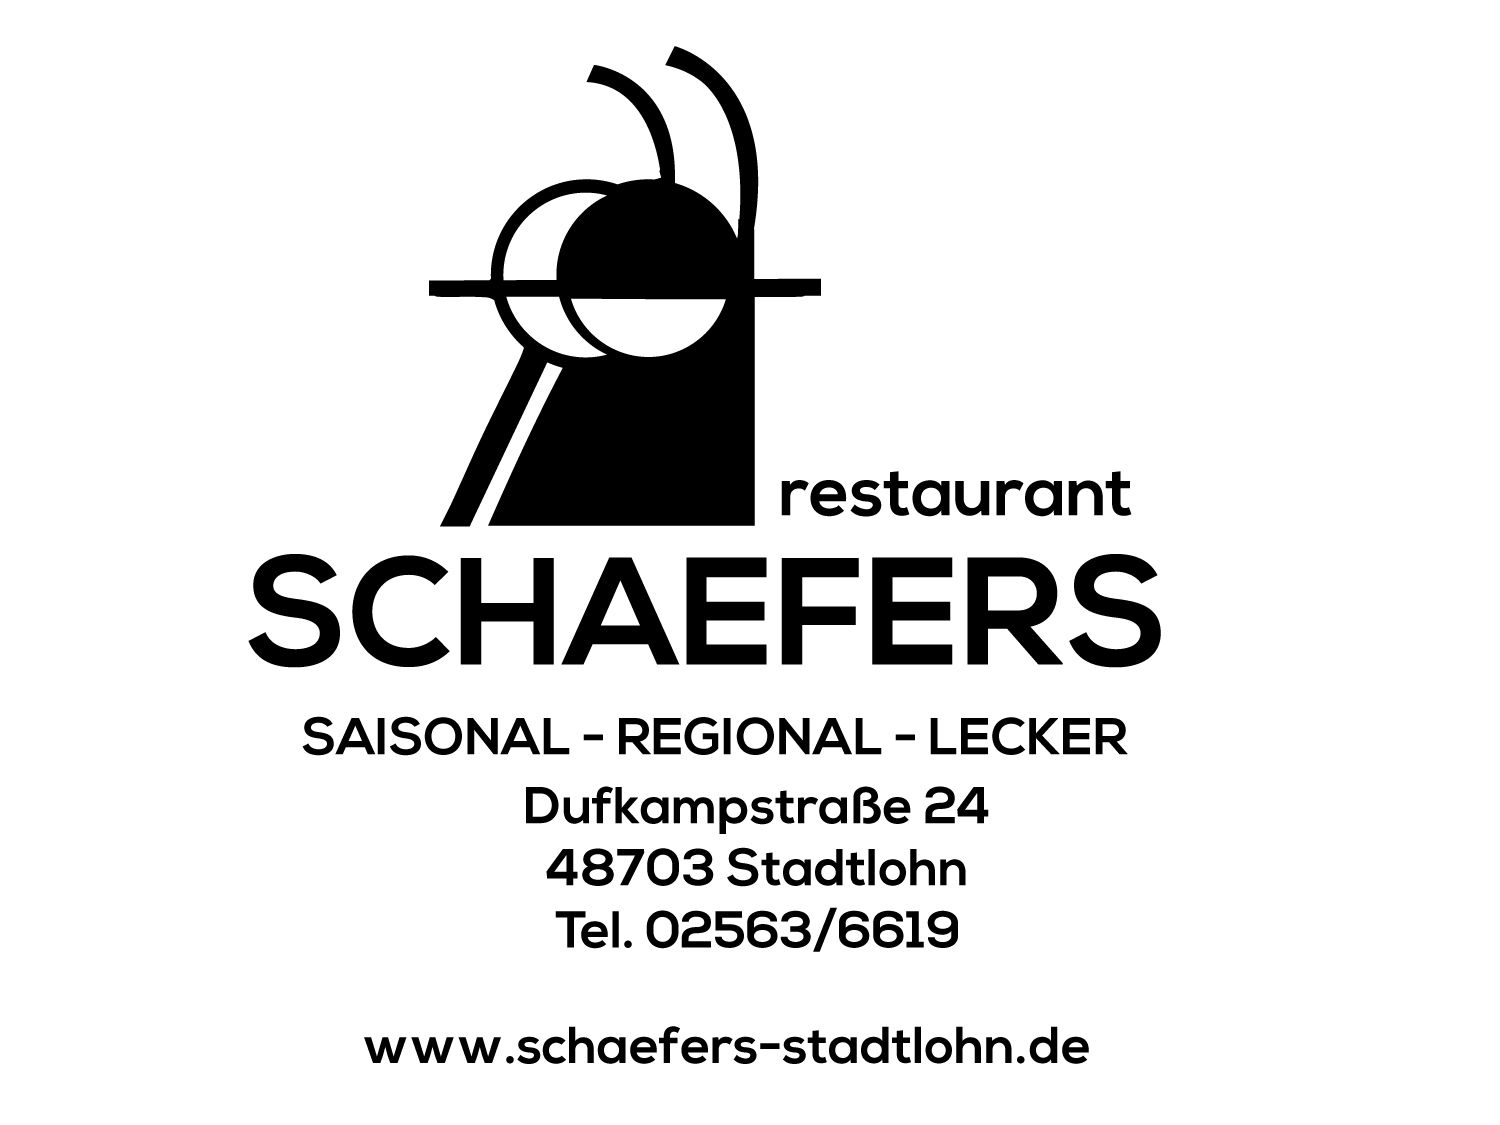 Schaefers Restaurant